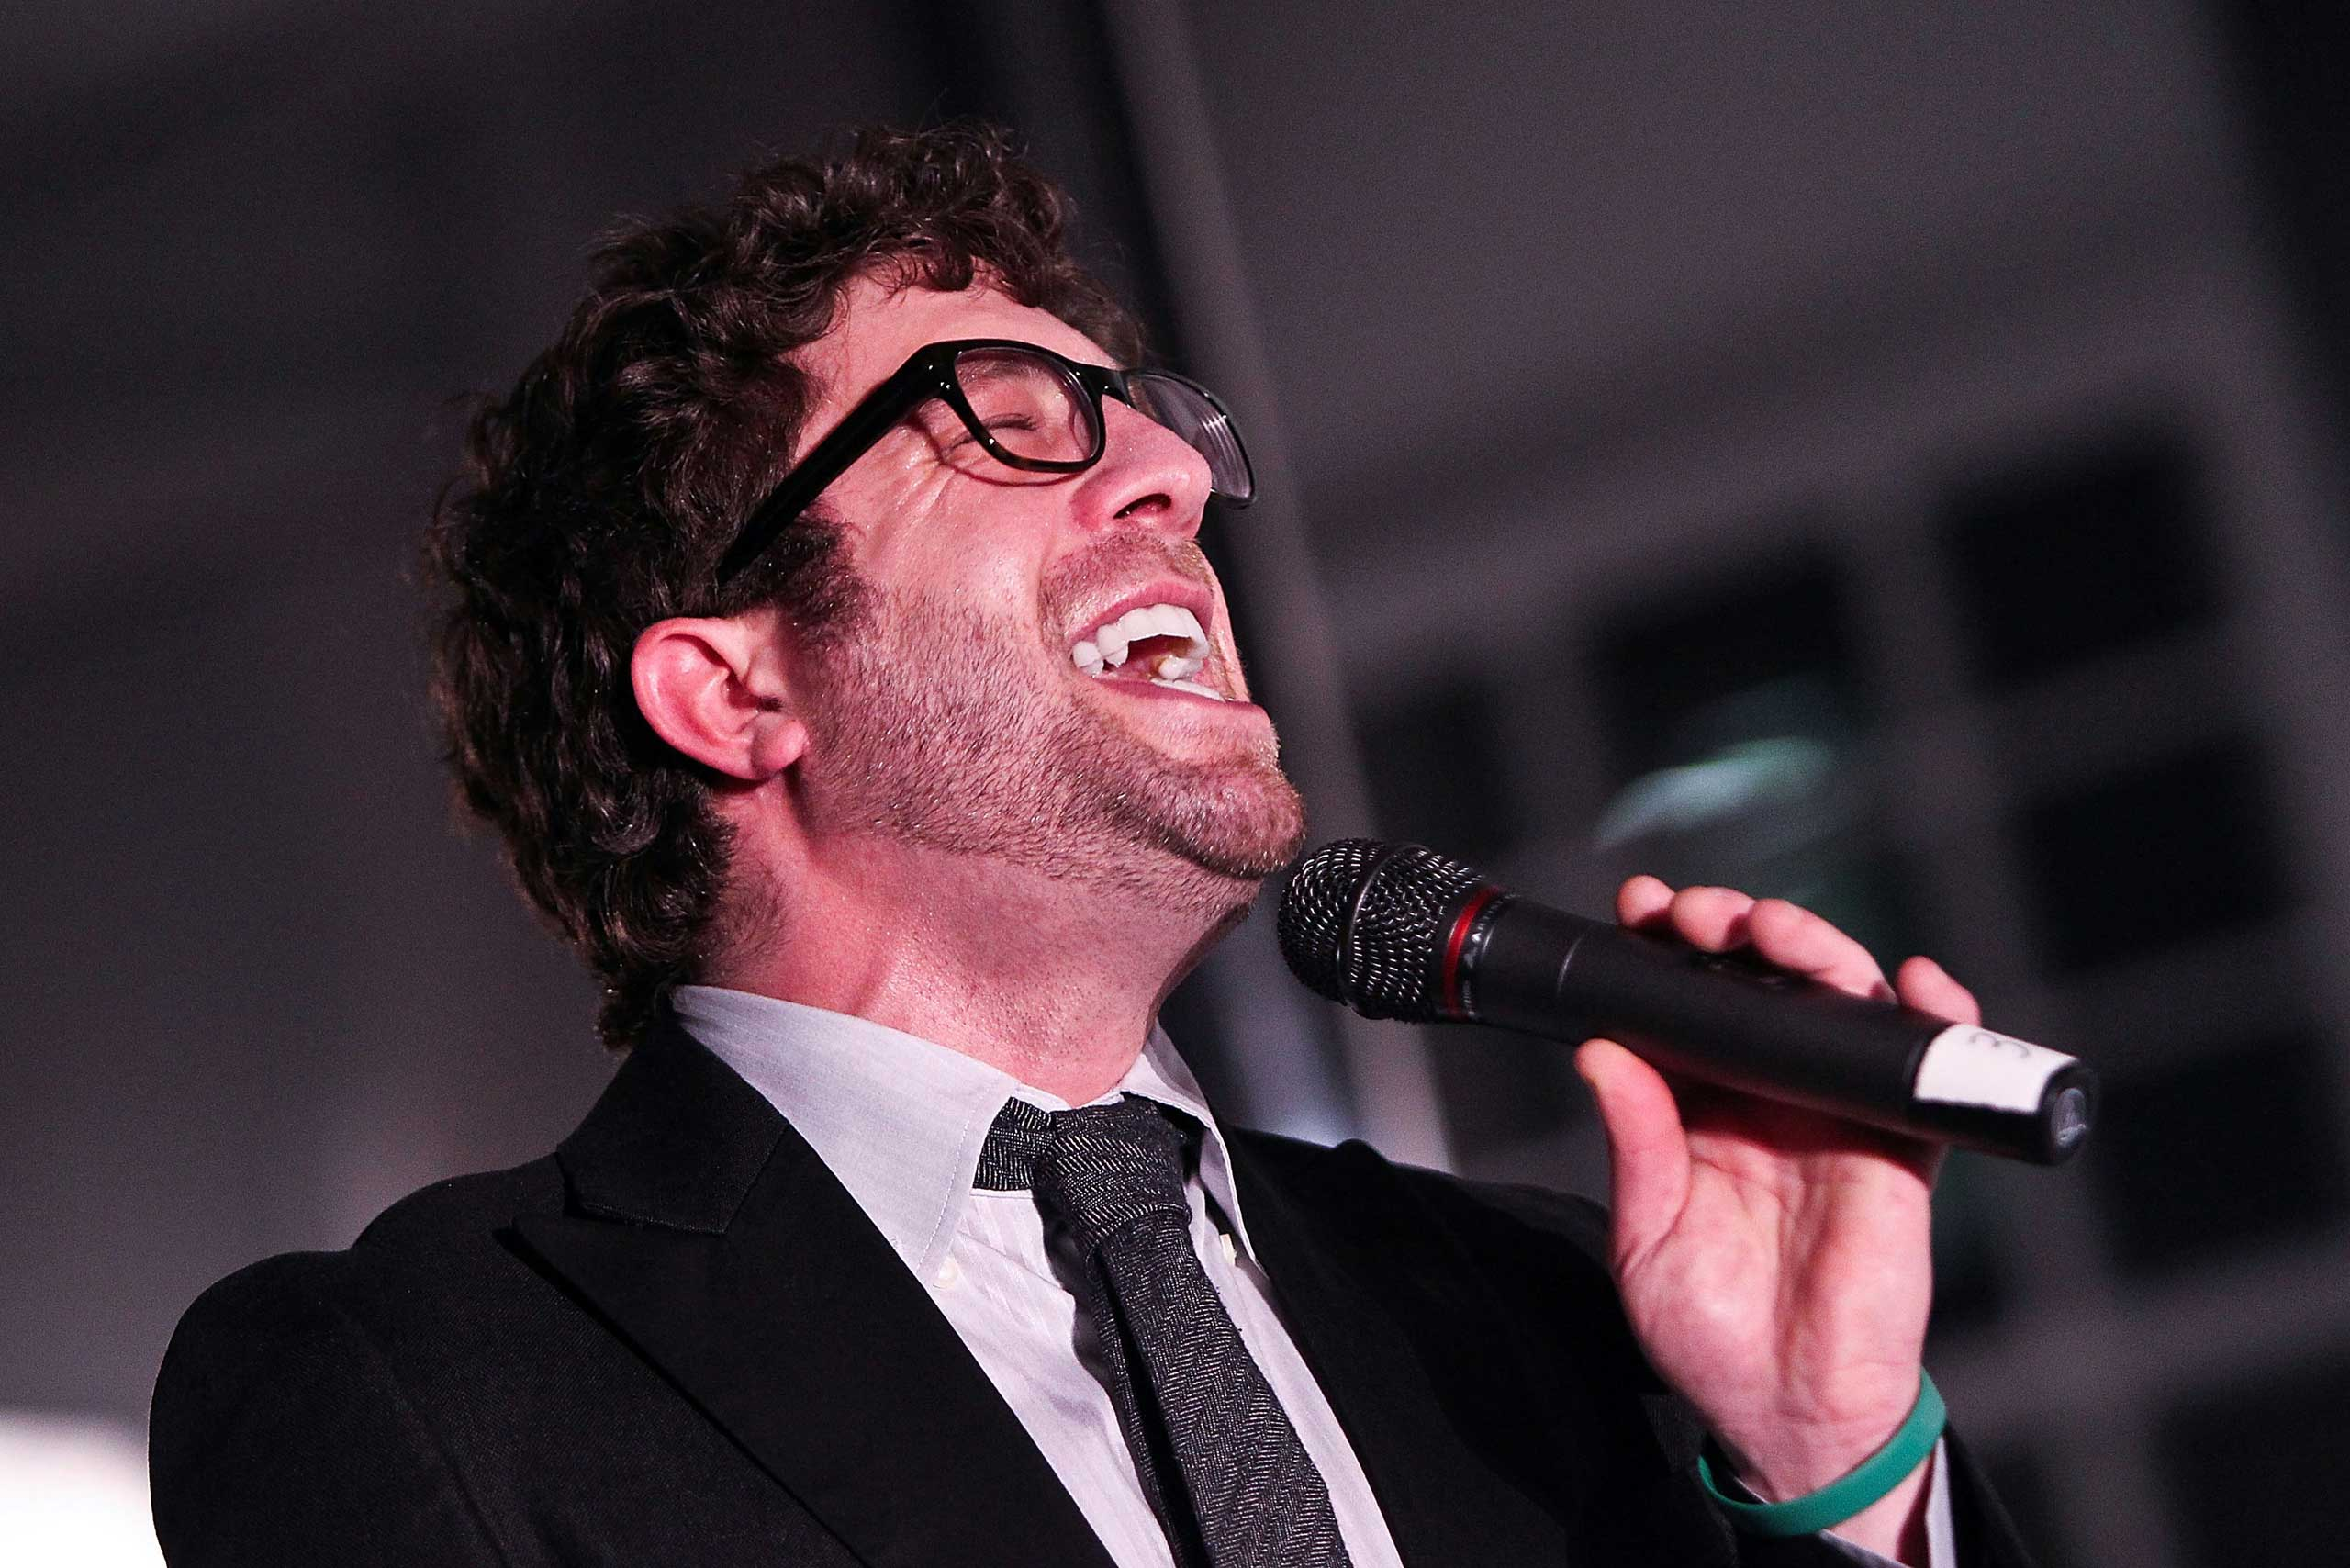 <b>Elliott Yamin</b>, who came in 3rd in season 5, performs at the Malaria No More Reception With American Idols To Celebrate Recent Progress In The Fight Against Malaria in Washington on March 7, 2012.